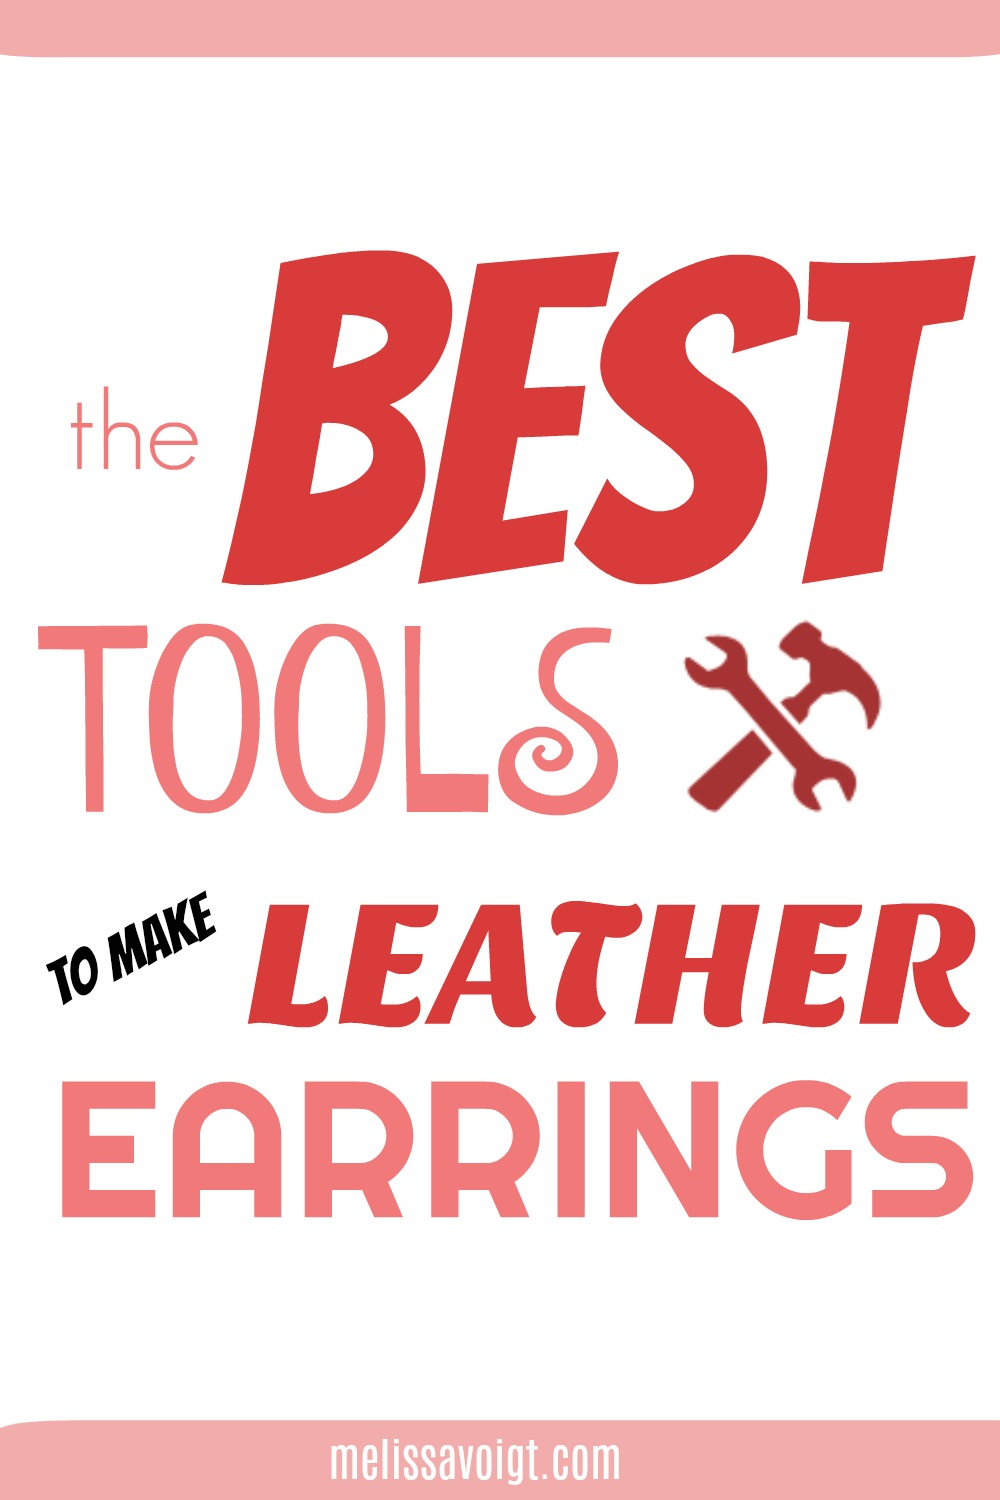 best tools leather earrings graphic.